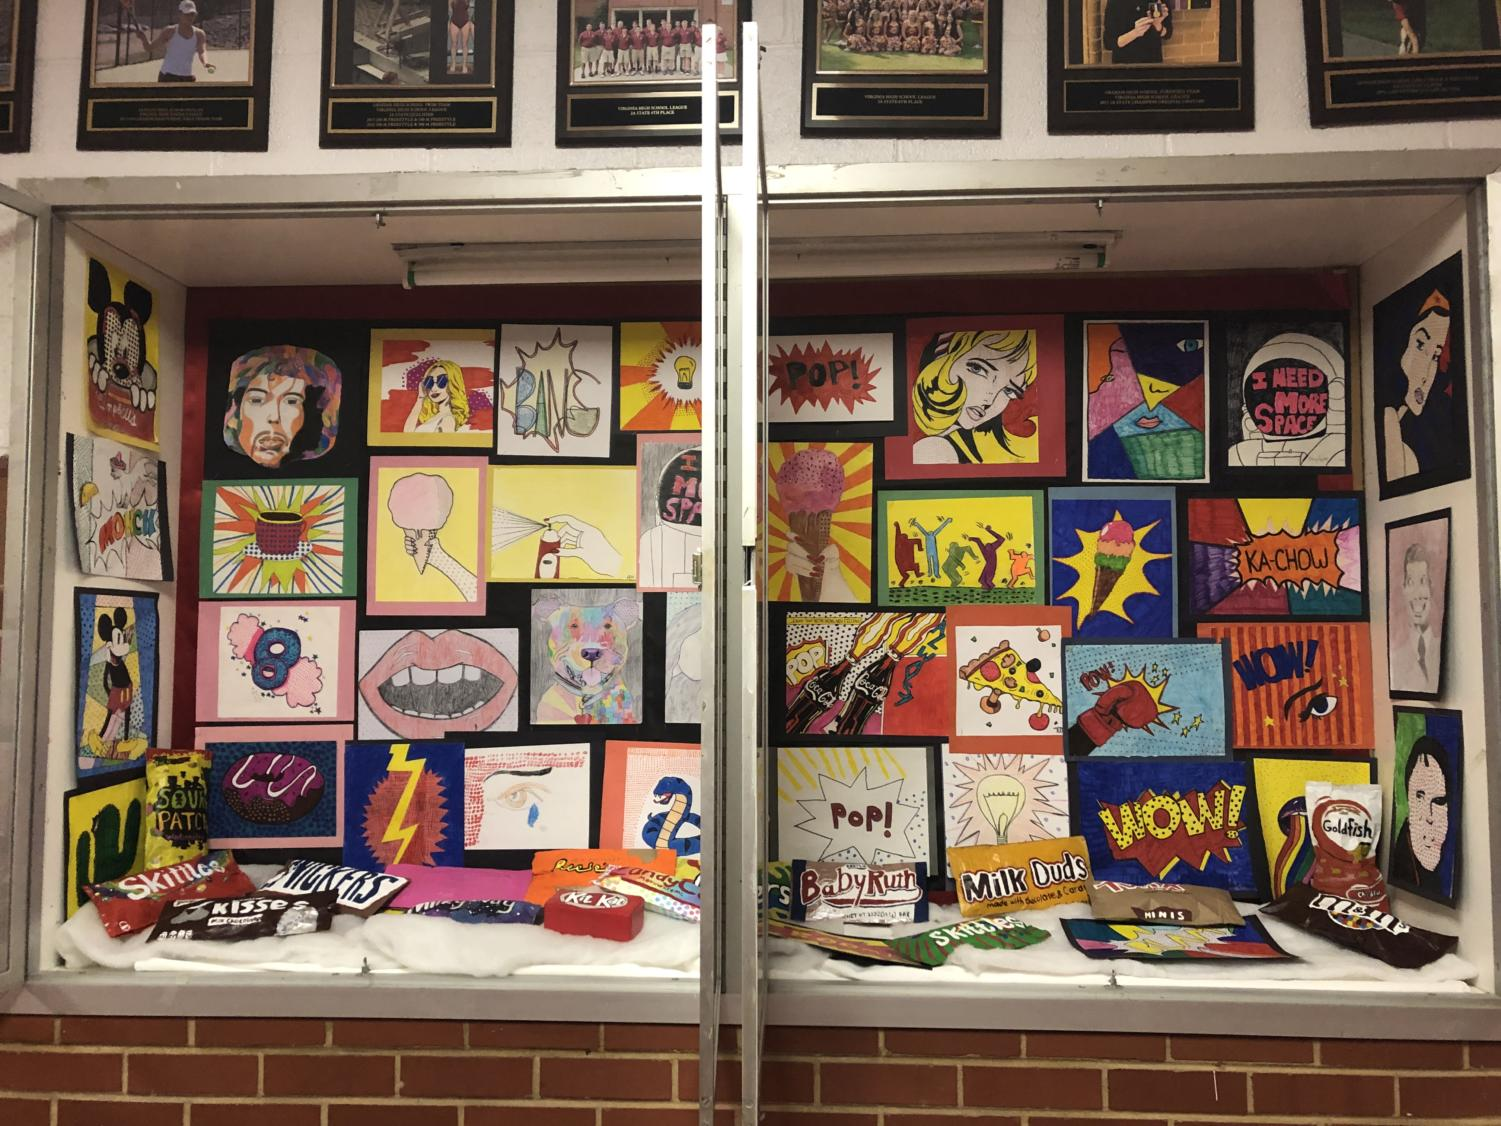 Art student's pop art pieces got added to the display case.